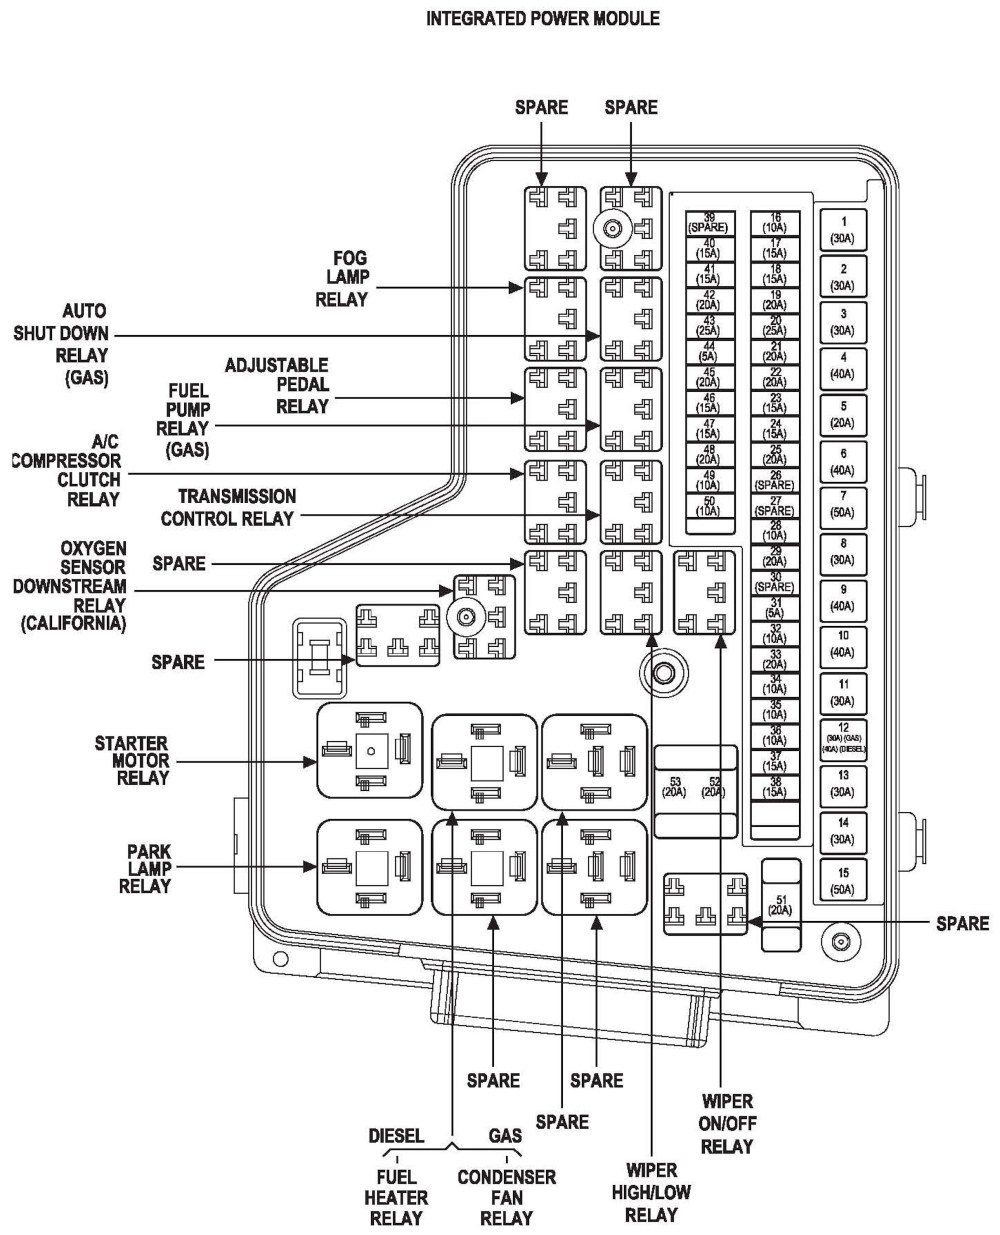 medium resolution of 94 dodge ram fuse diagram wiring diagram mega 1994 dodge ram 2500 wiring diagram 94 dodge